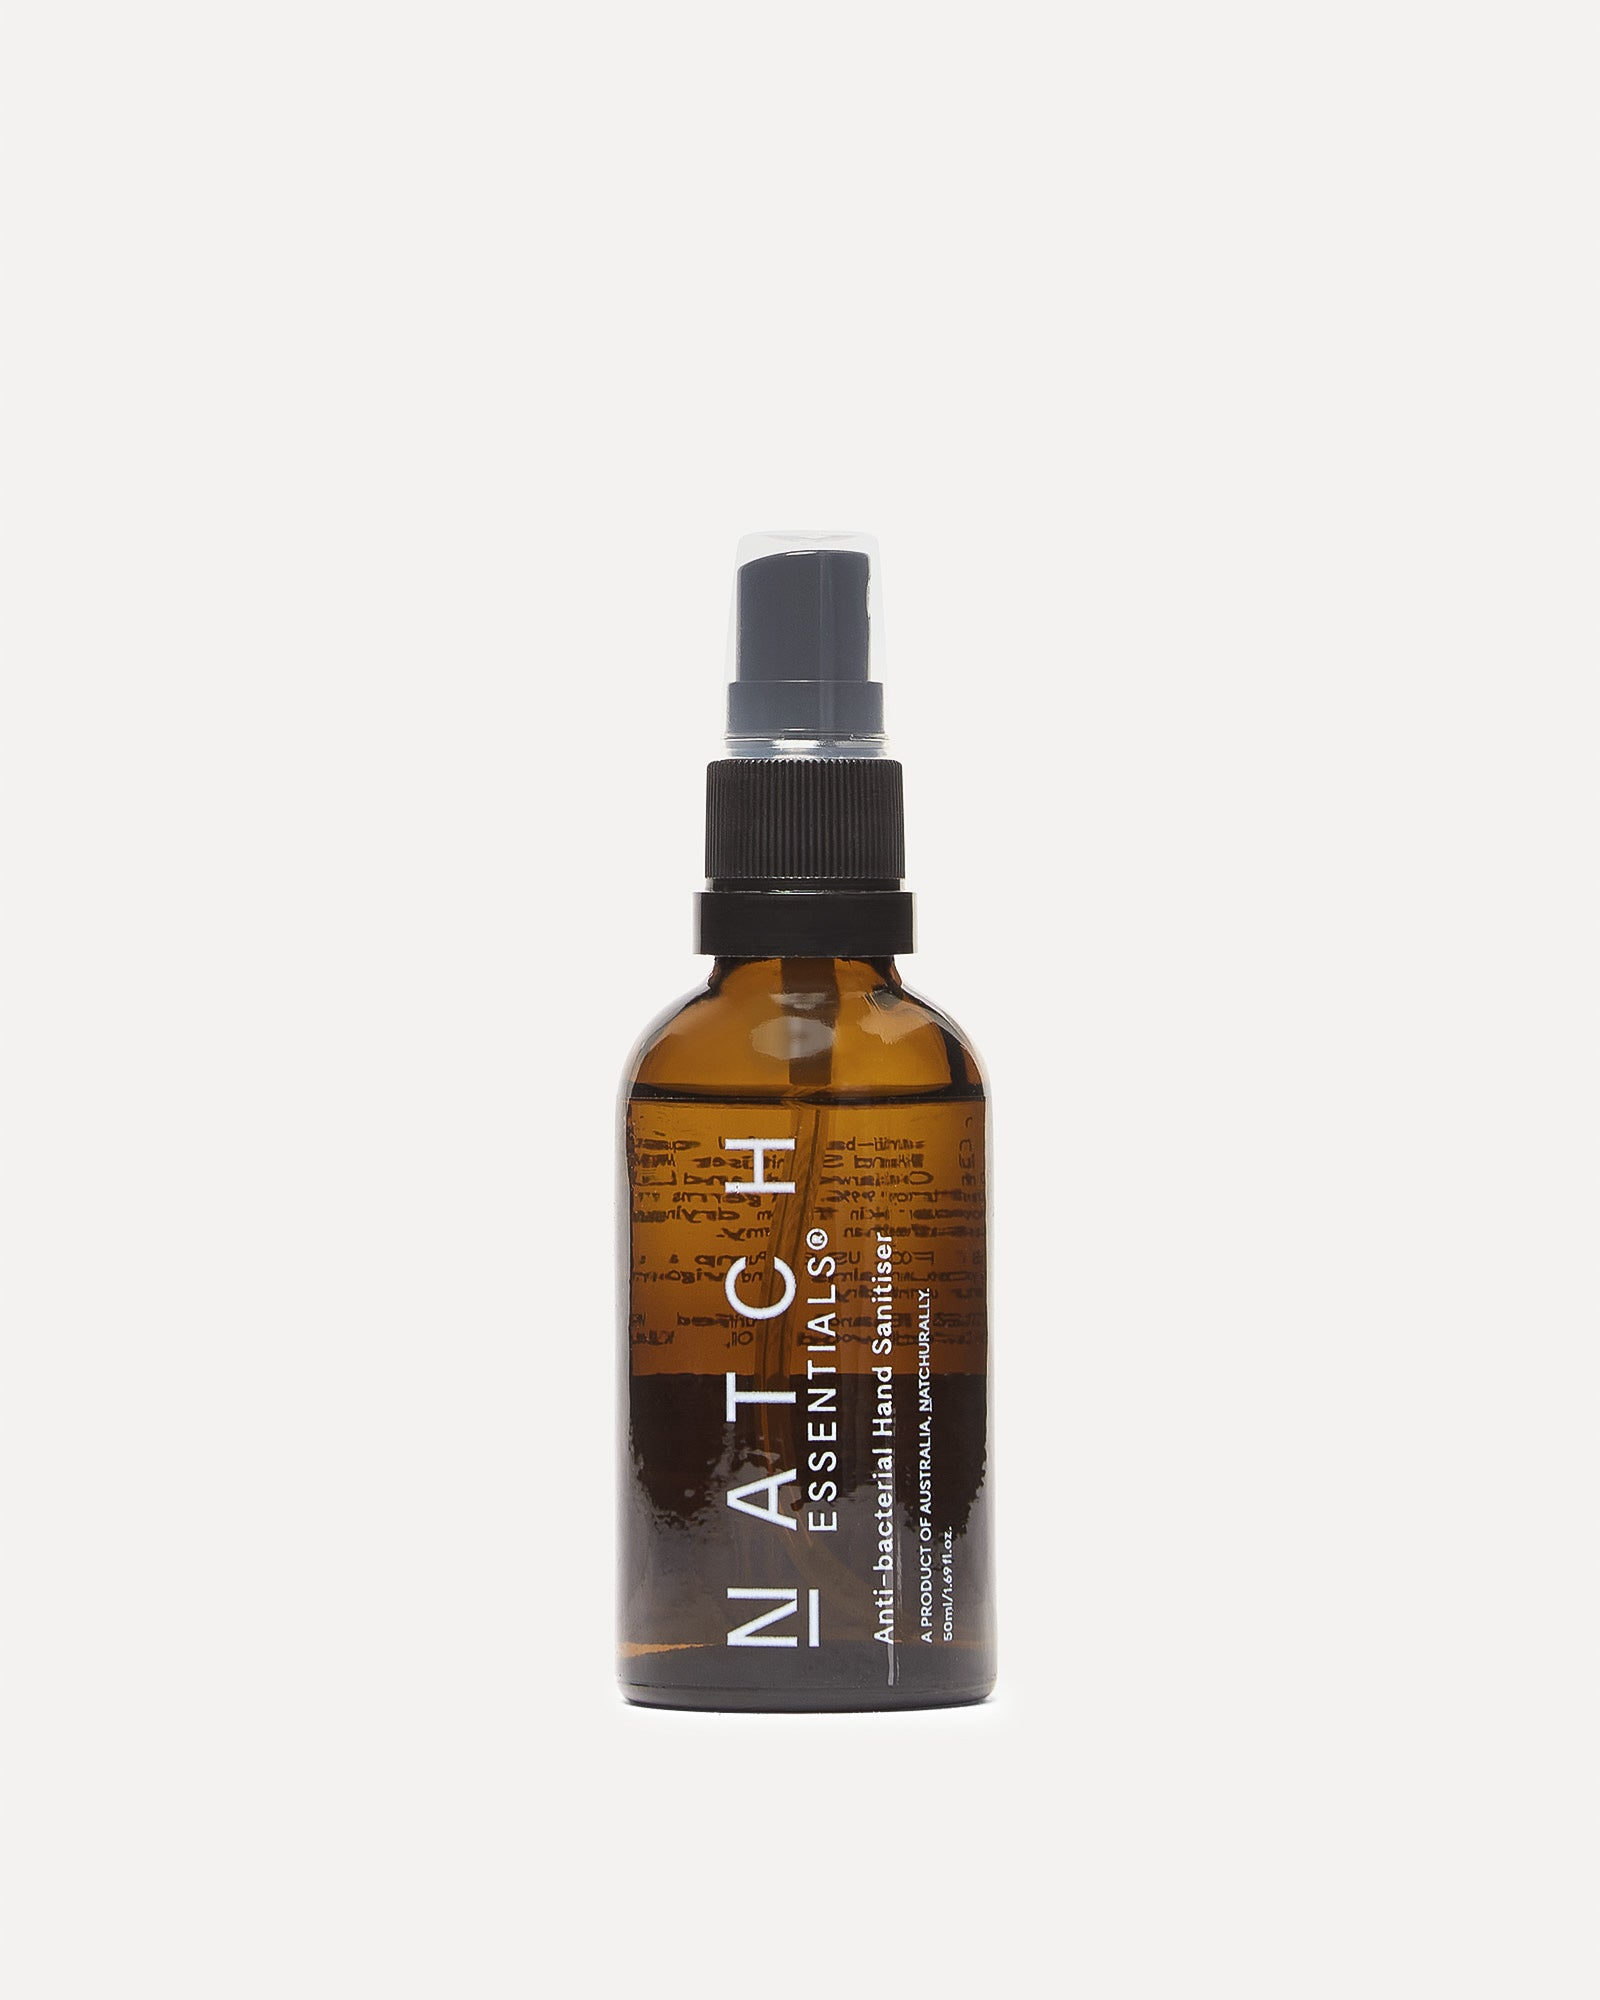 Natch Essentials Hand Sanitiser Mist